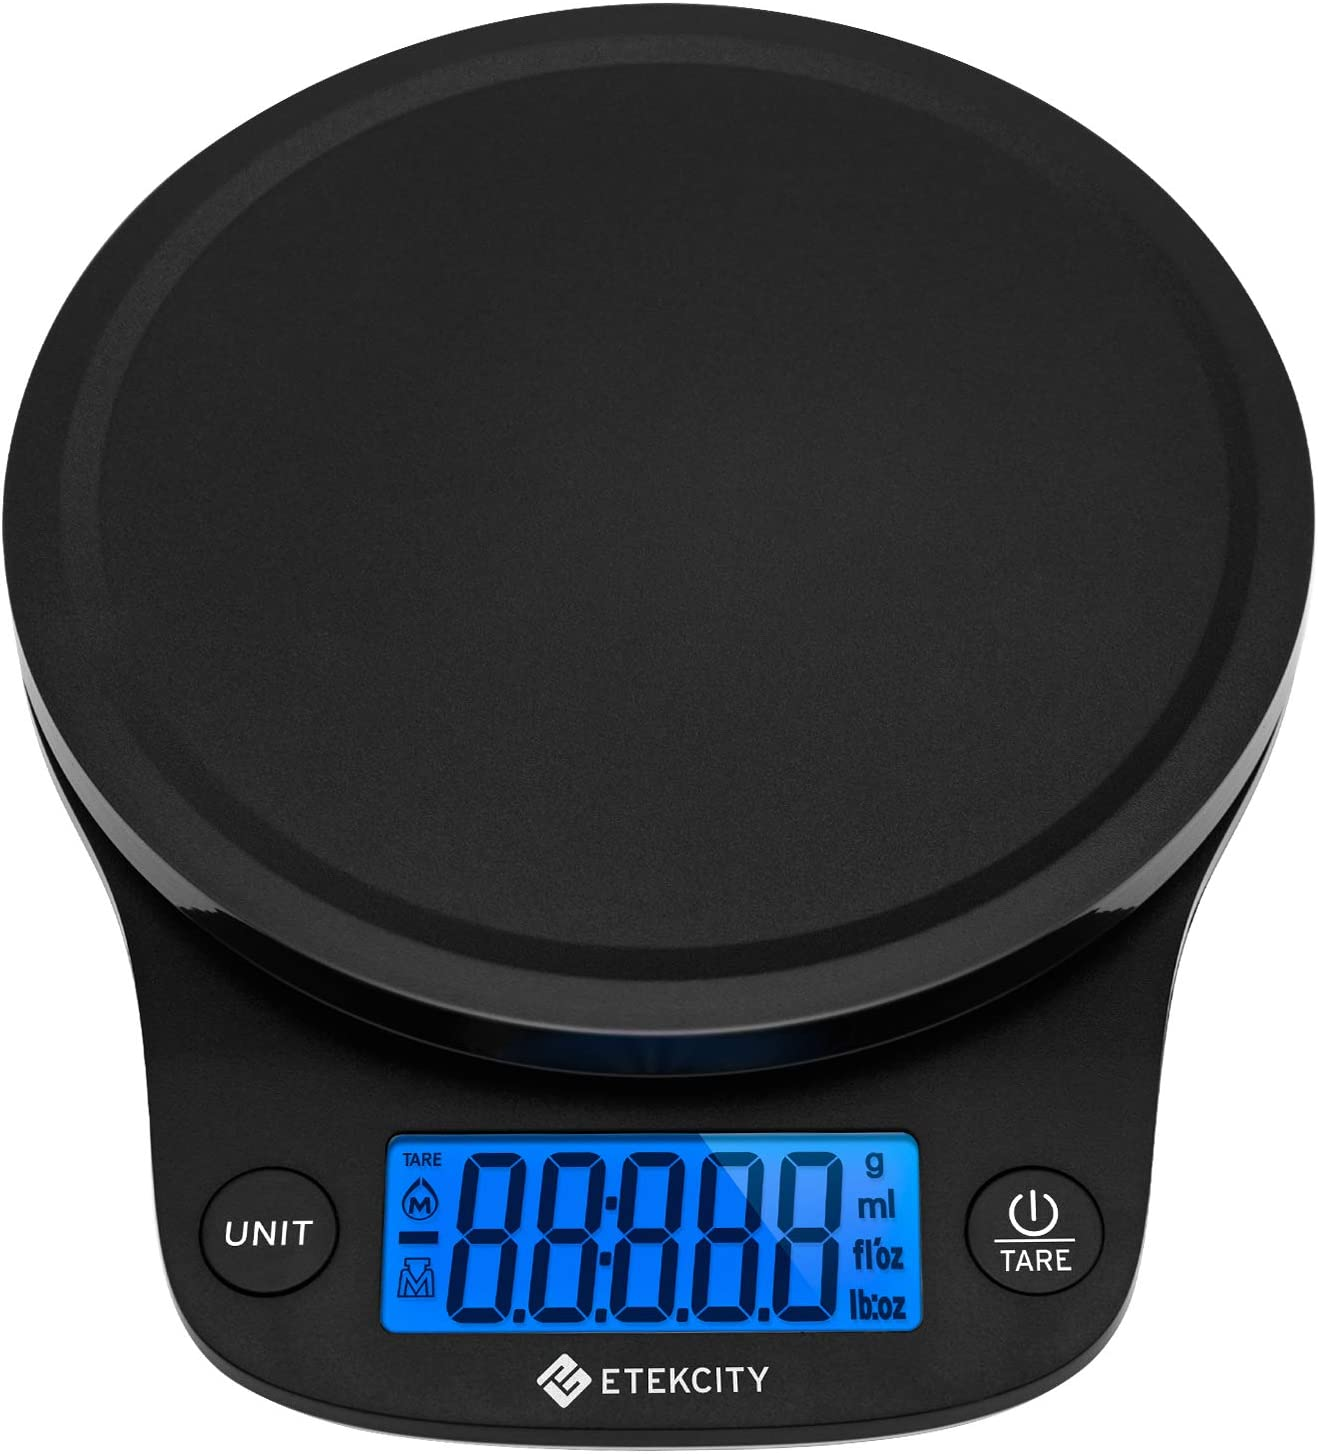 Etekcity Food Scale Digital Kitchen Weight for Cooking and Baking, Large, Black